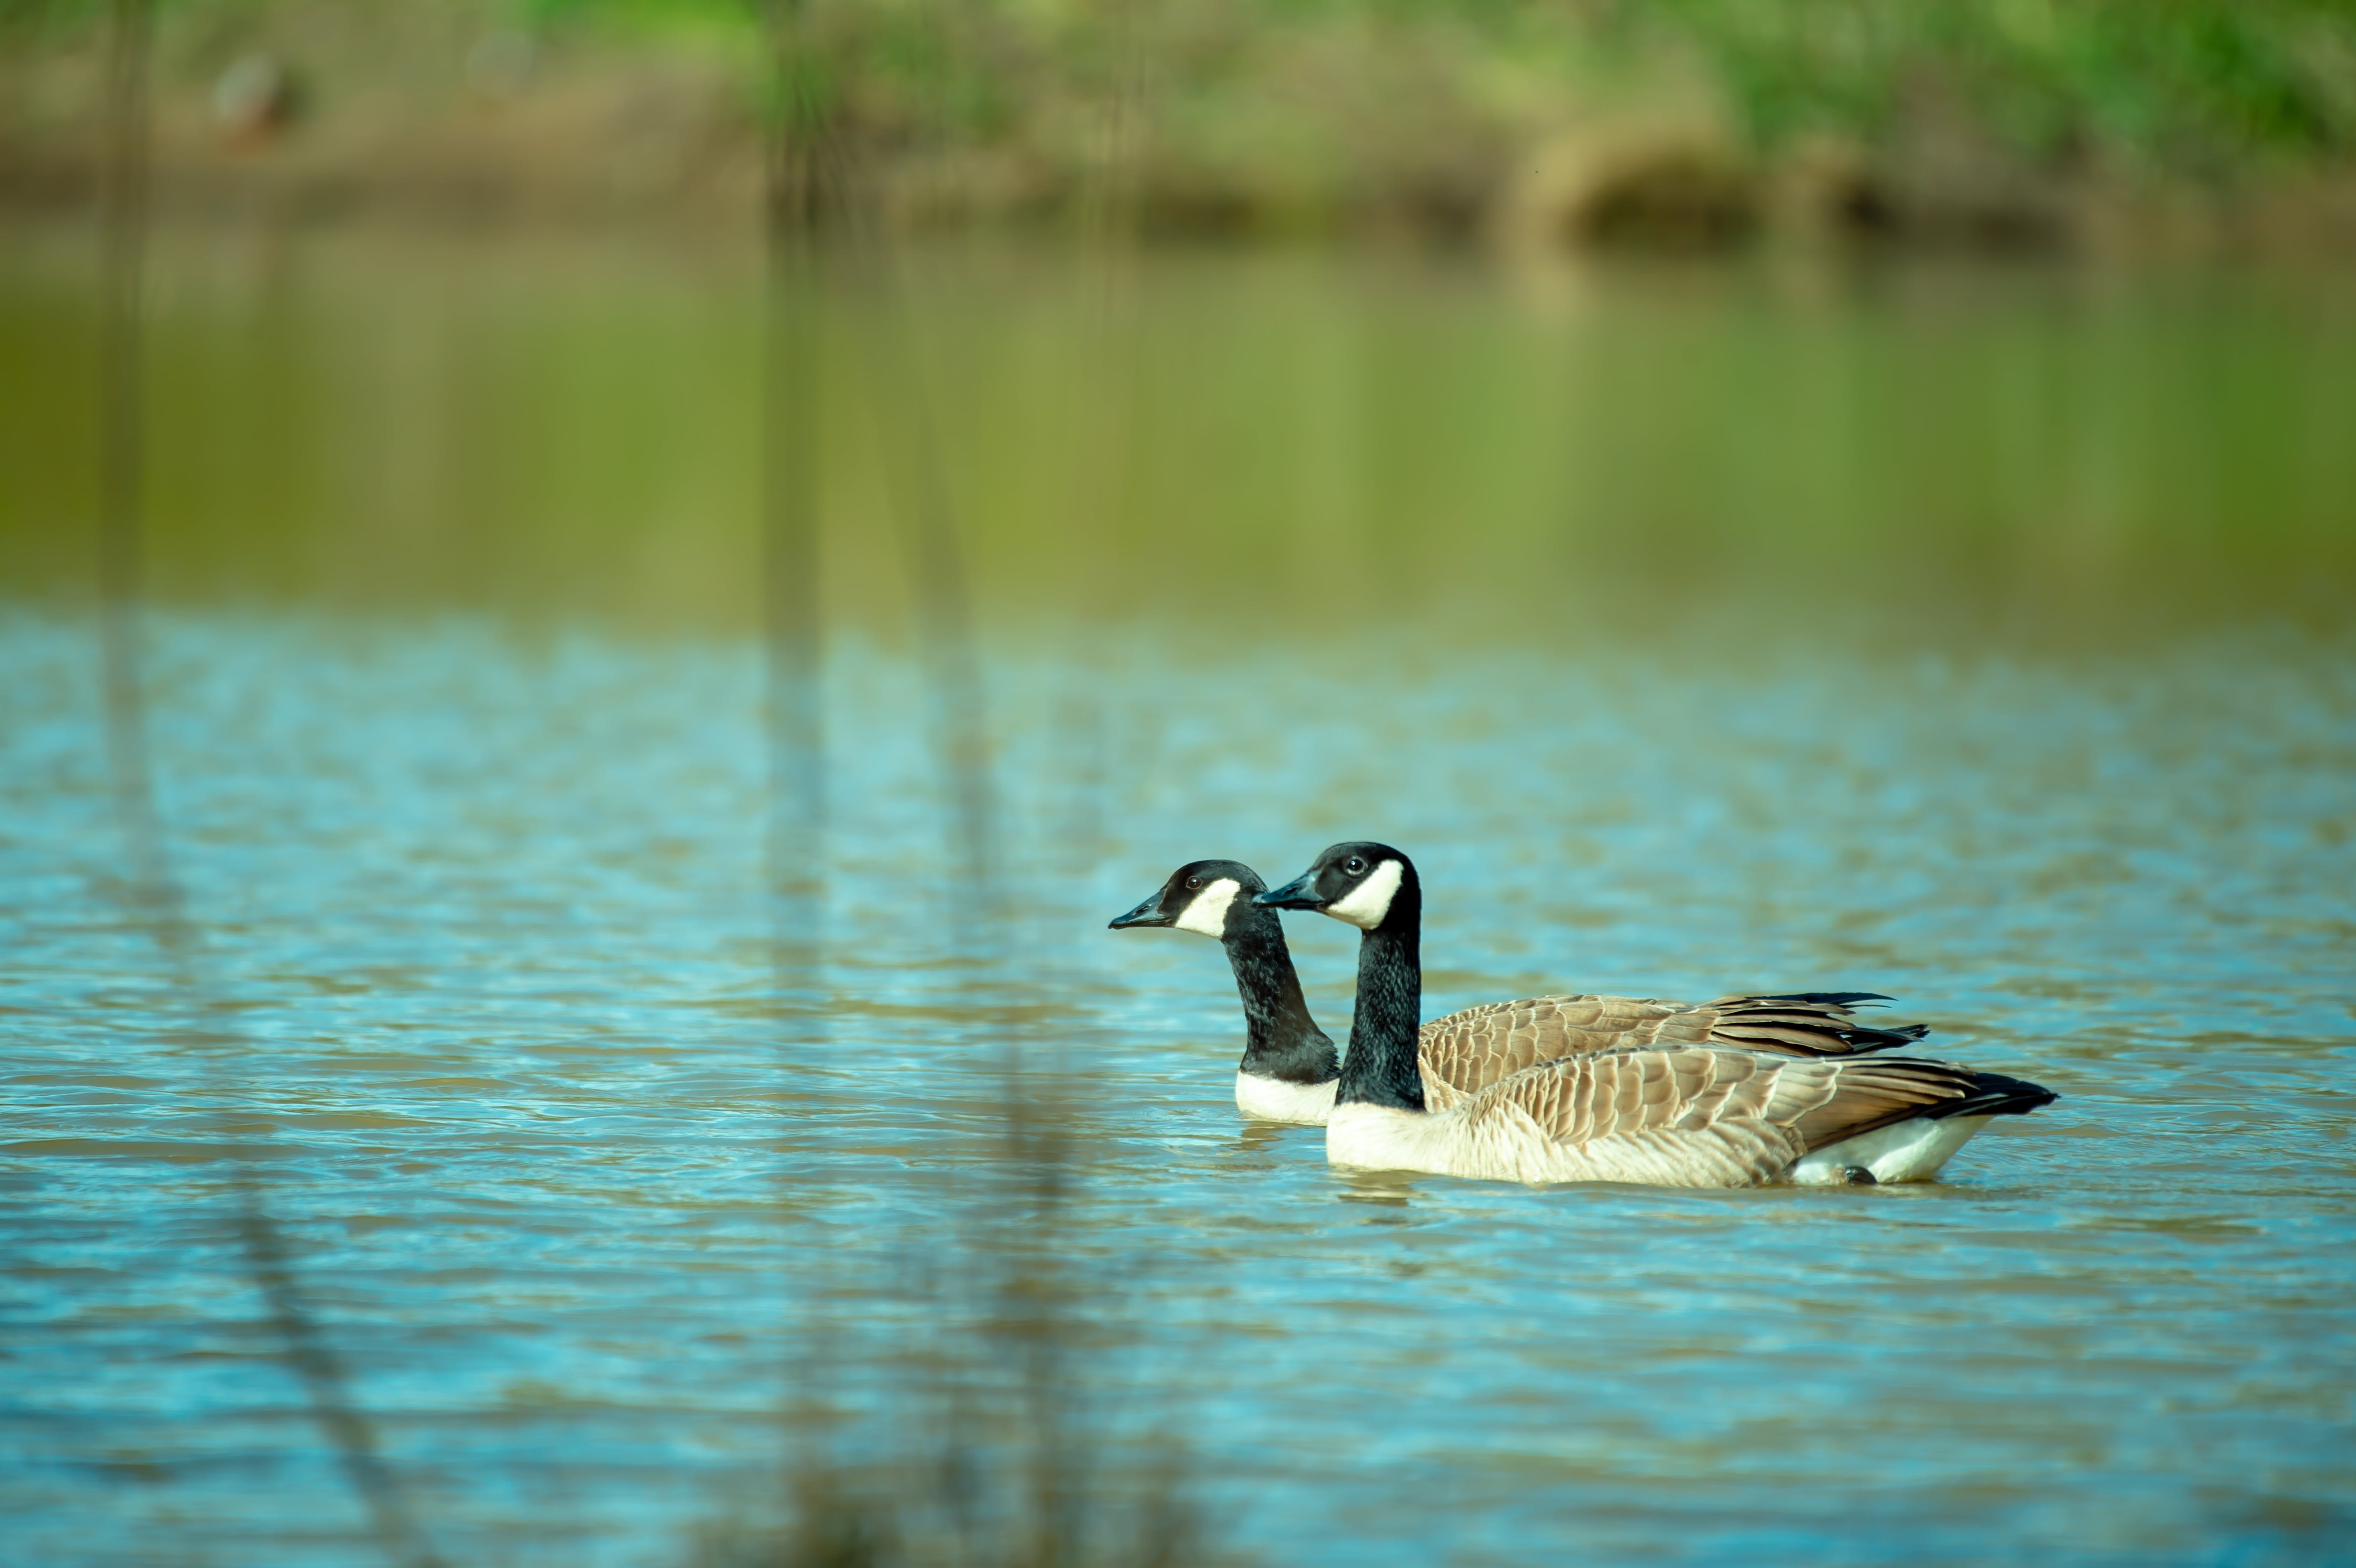 Close-Up Photography of Two Ducks On Water